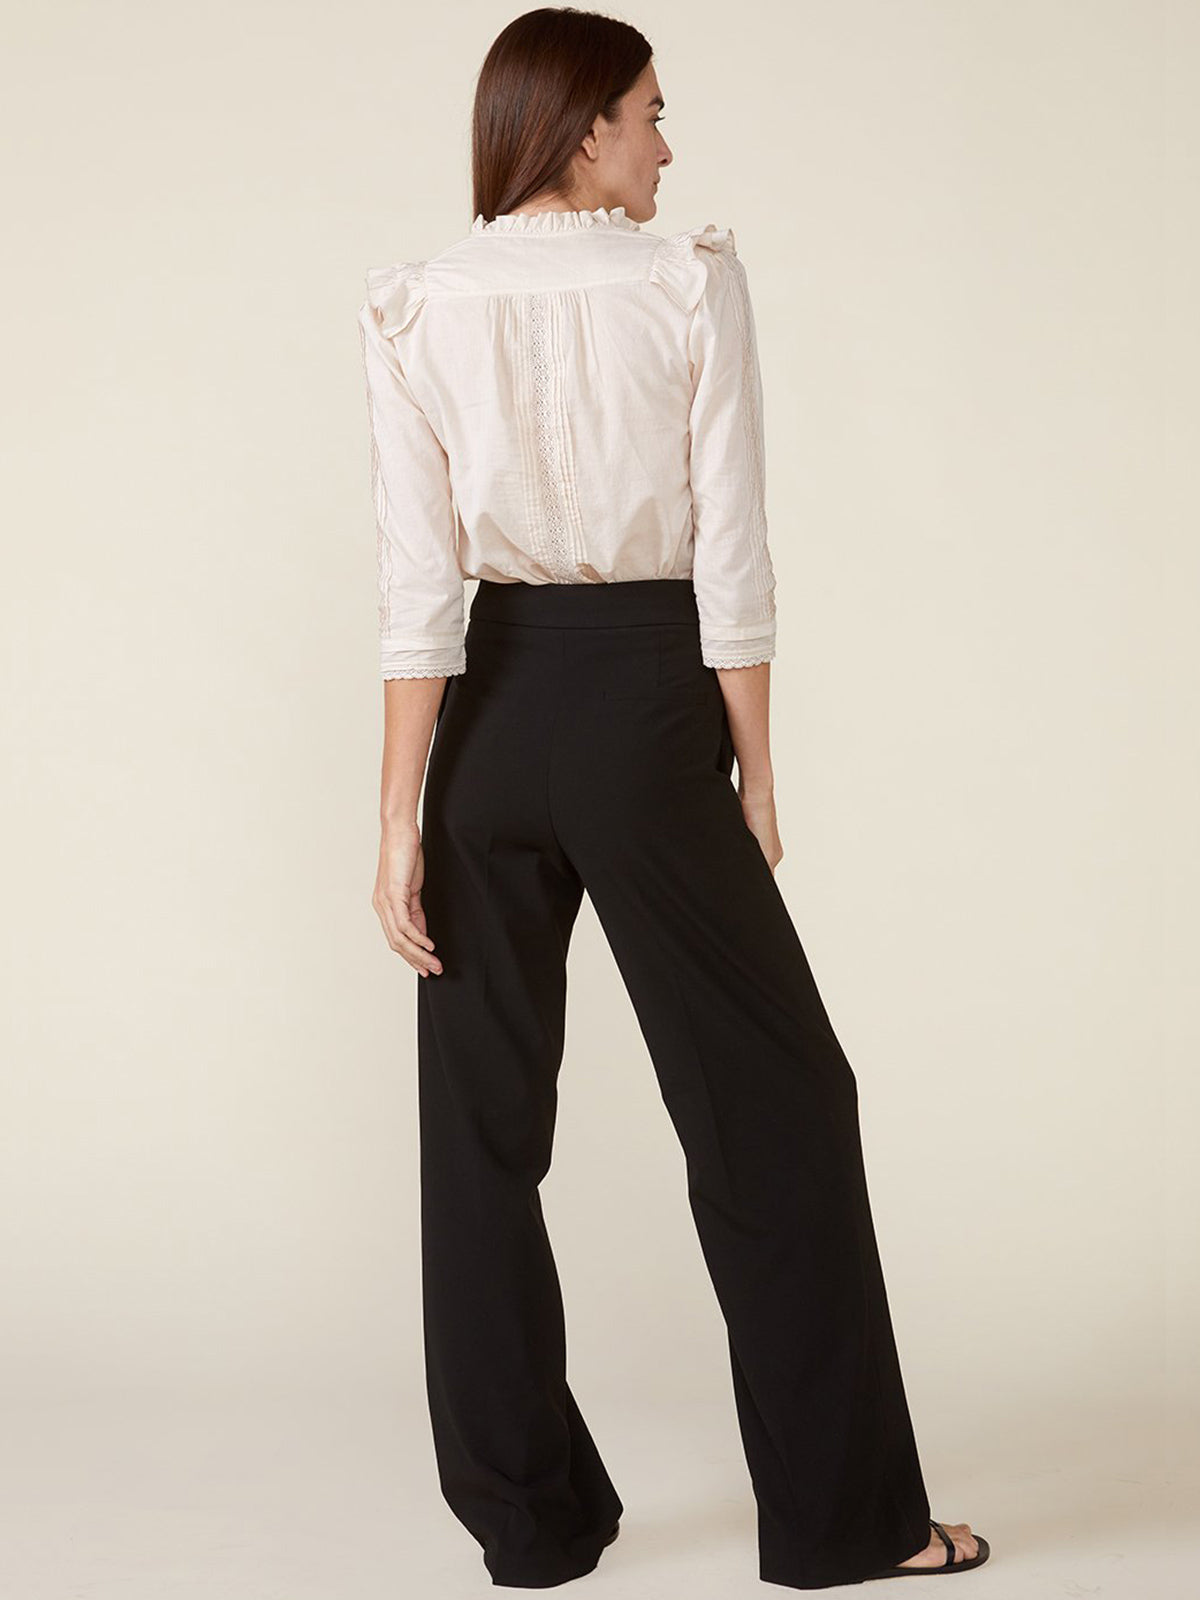 Linde Blouse | Birch Linde Blouse | Birch